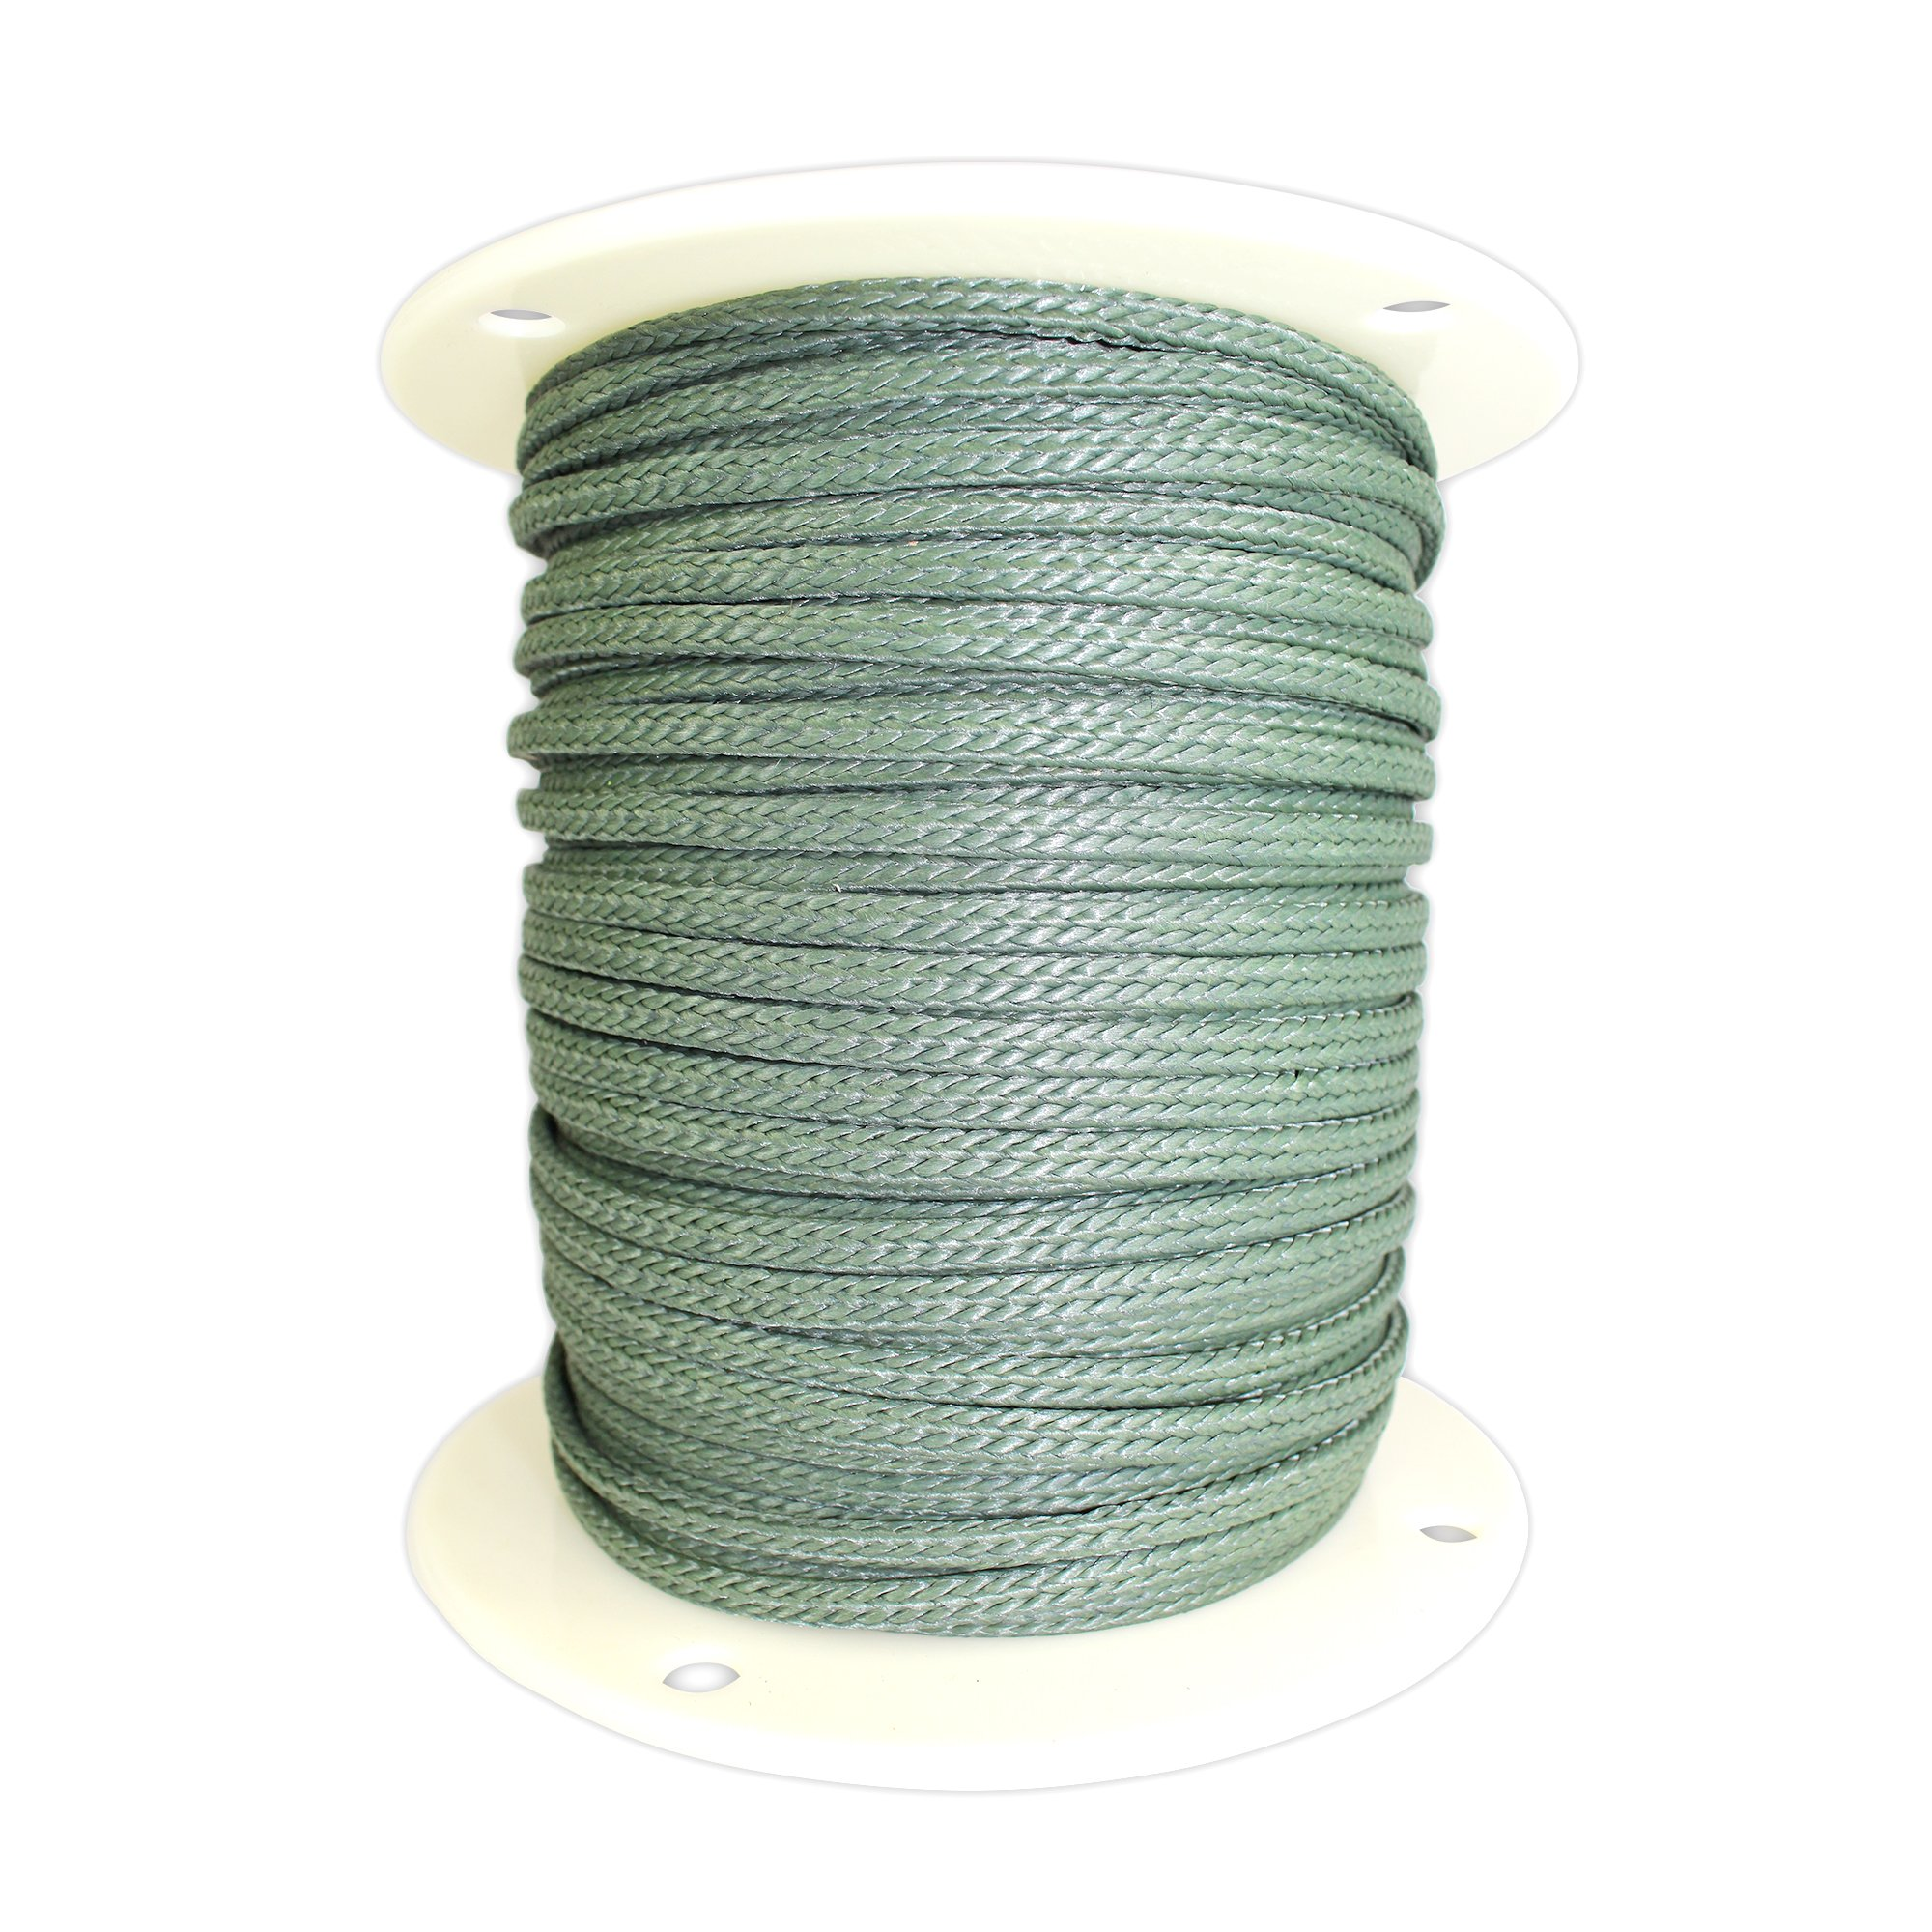 SGT KNOTS Braided Polyester Rope (1/4 in - 6mm) Braid on Braid Stiff Halter Cord - DIY Horse Halter - Low Stretch Cord for Arborist/Tree Rigging, Hiking, Crafting (25 ft - Coil, Hunter Green)